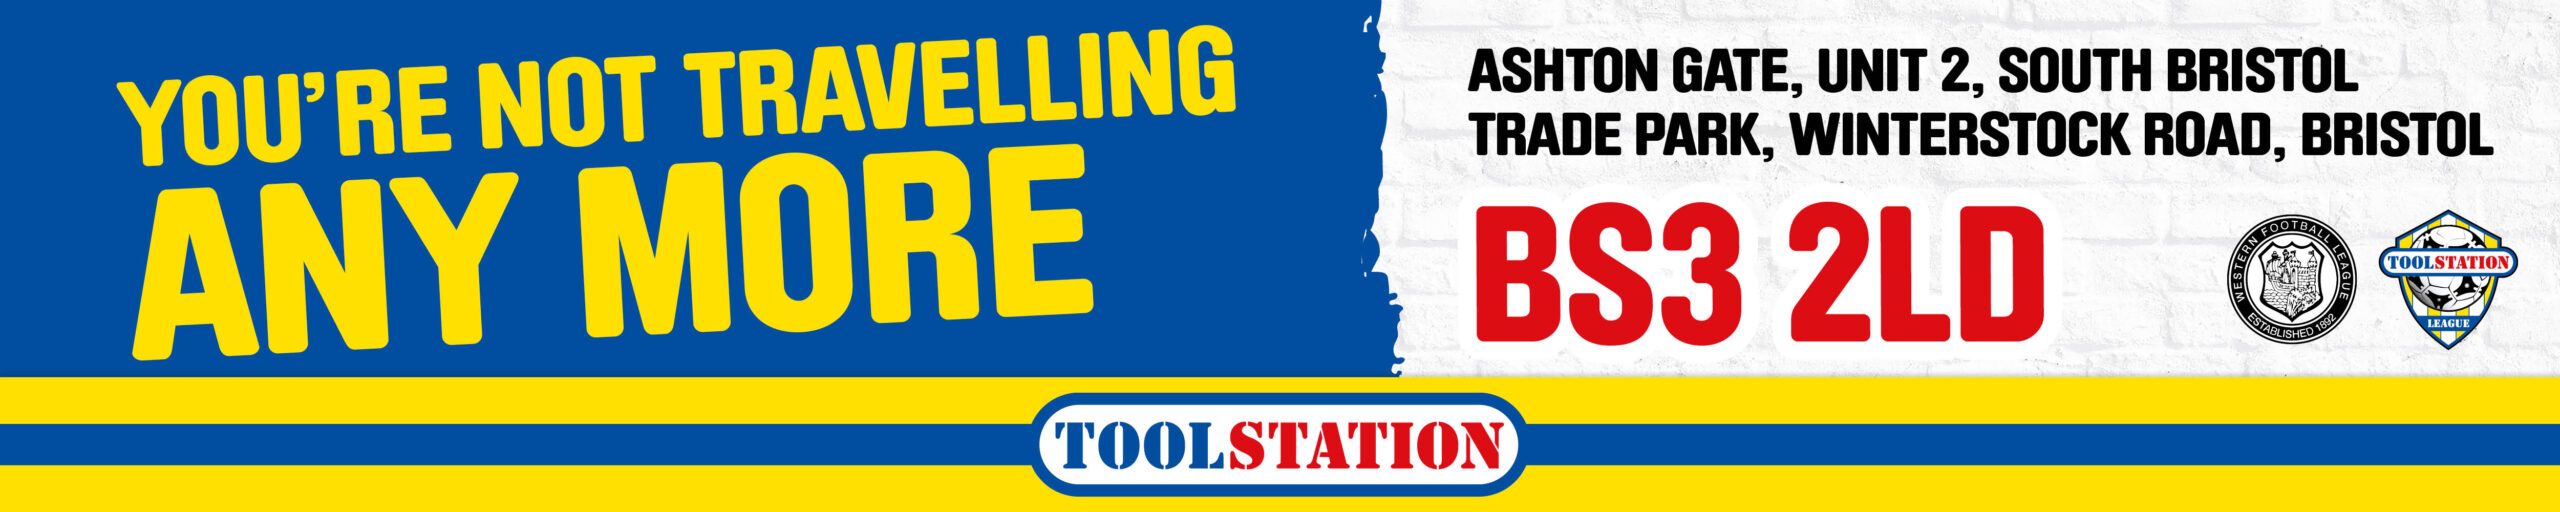 Ashton Gate Toolstation